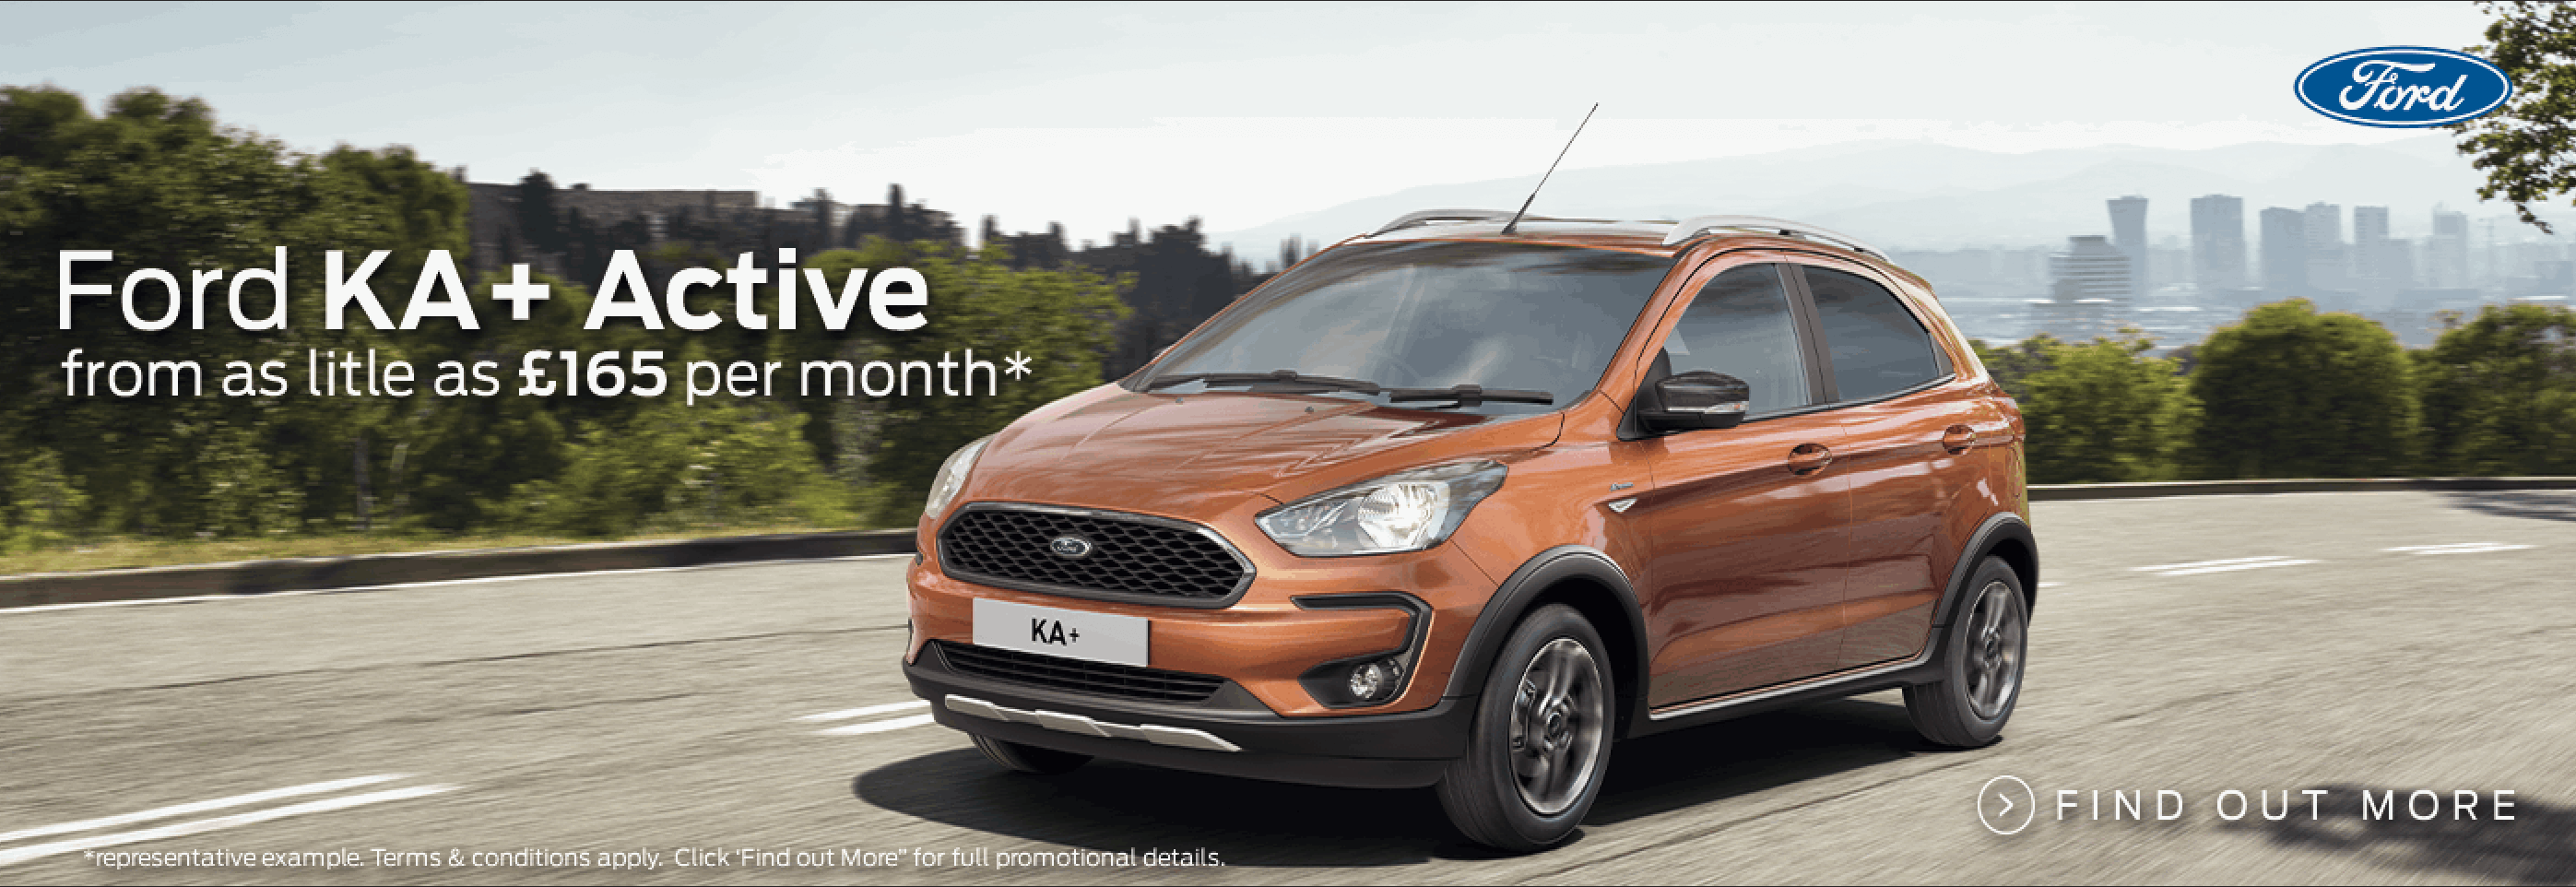 https://www.chrisallengarages.co.uk/ford/offers/ka-active-159-deposit-159-per-month/39234/offerdetail.aspx